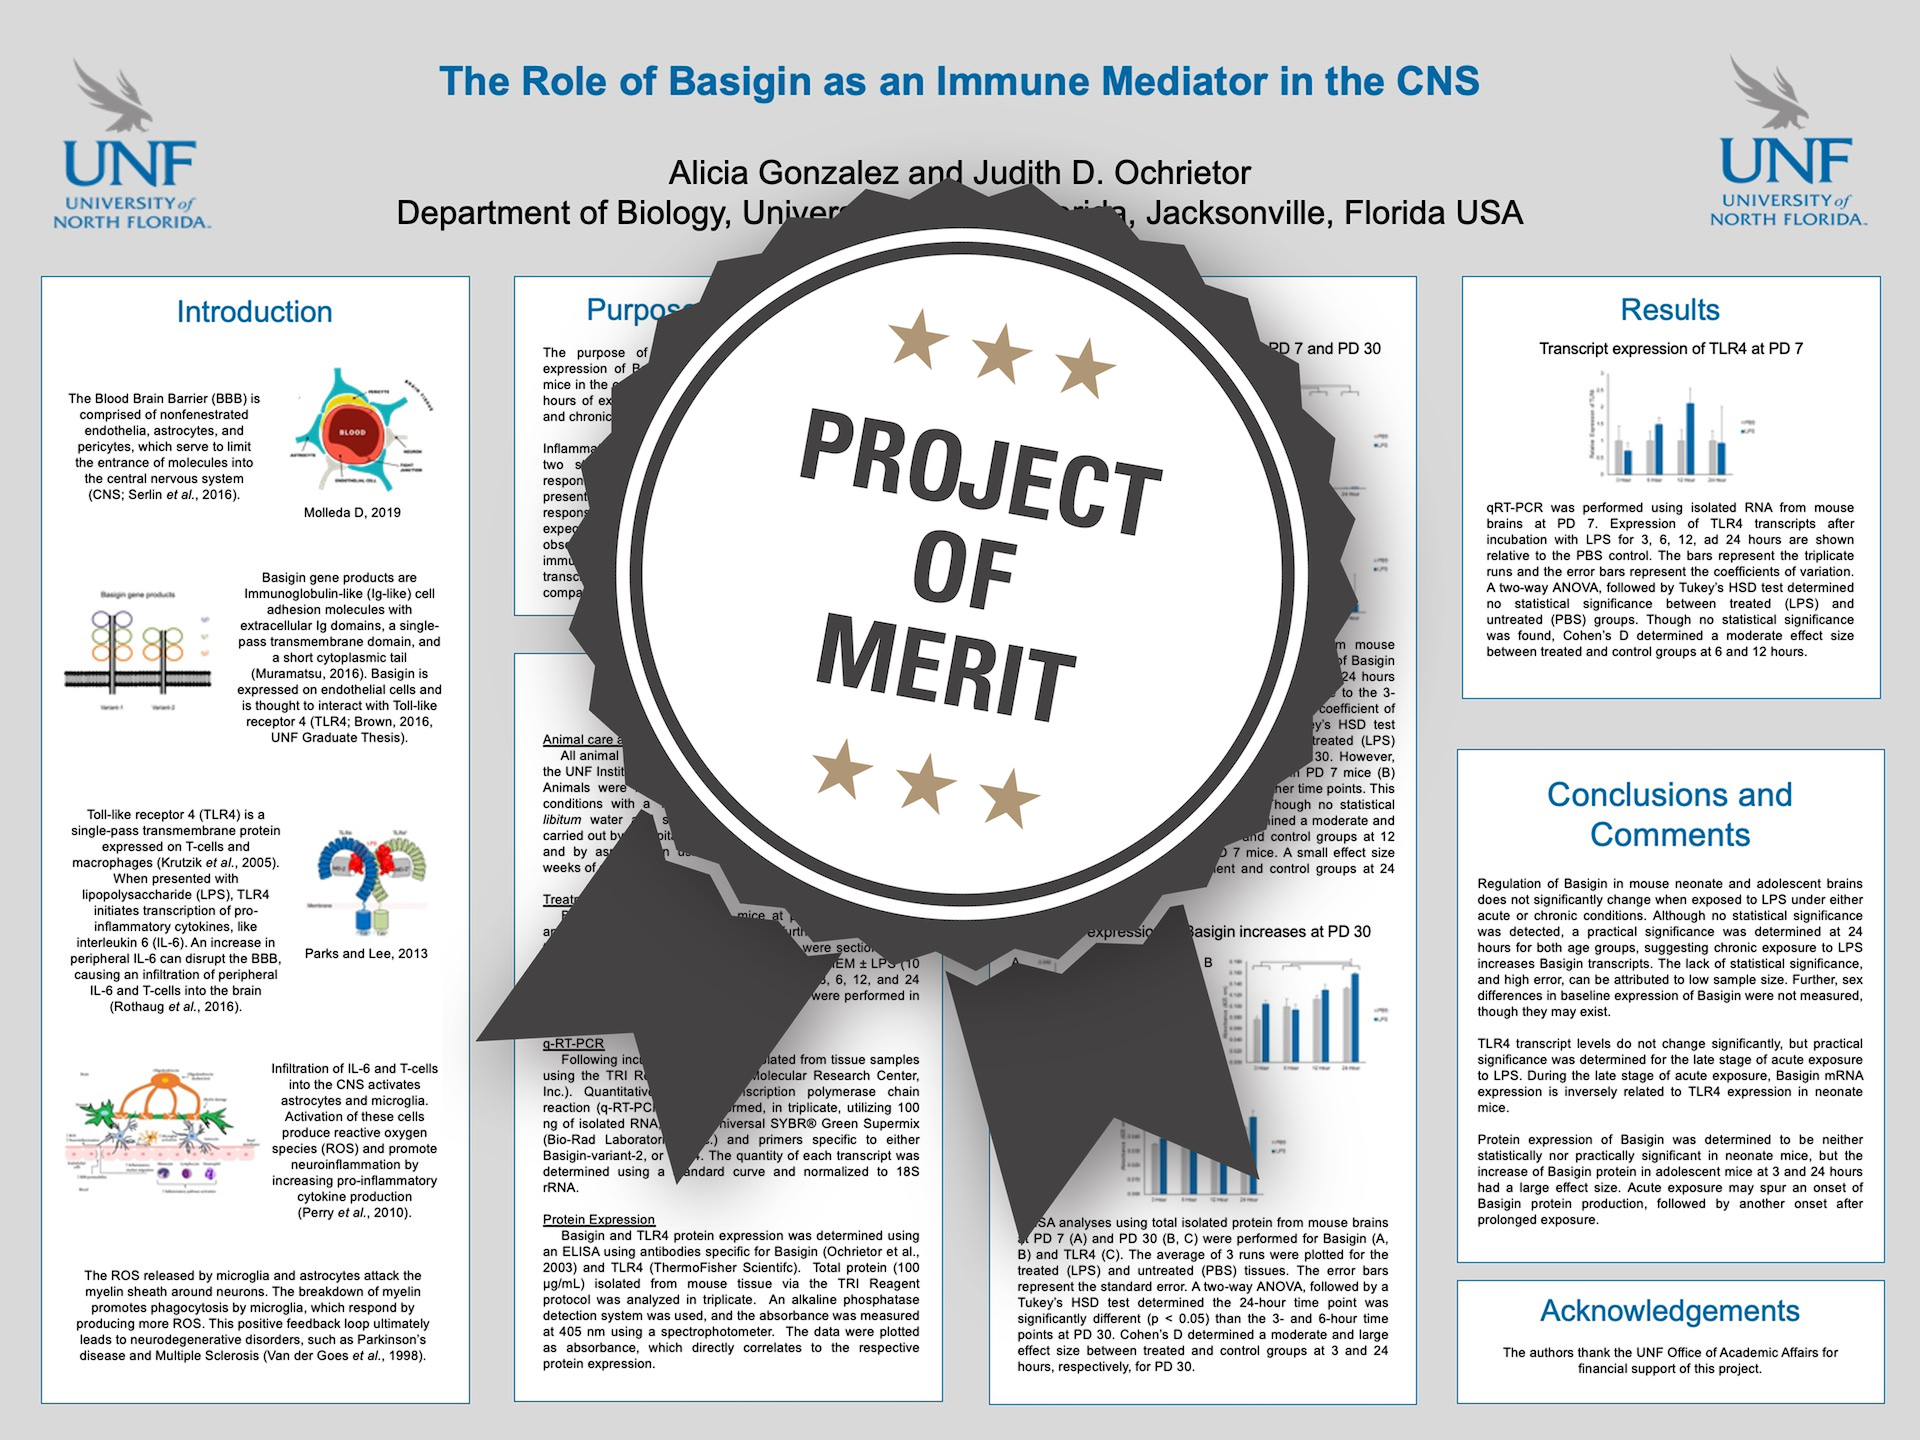 The Role of Basigin as an Immune Mediator in the CNS Project of Merit poster